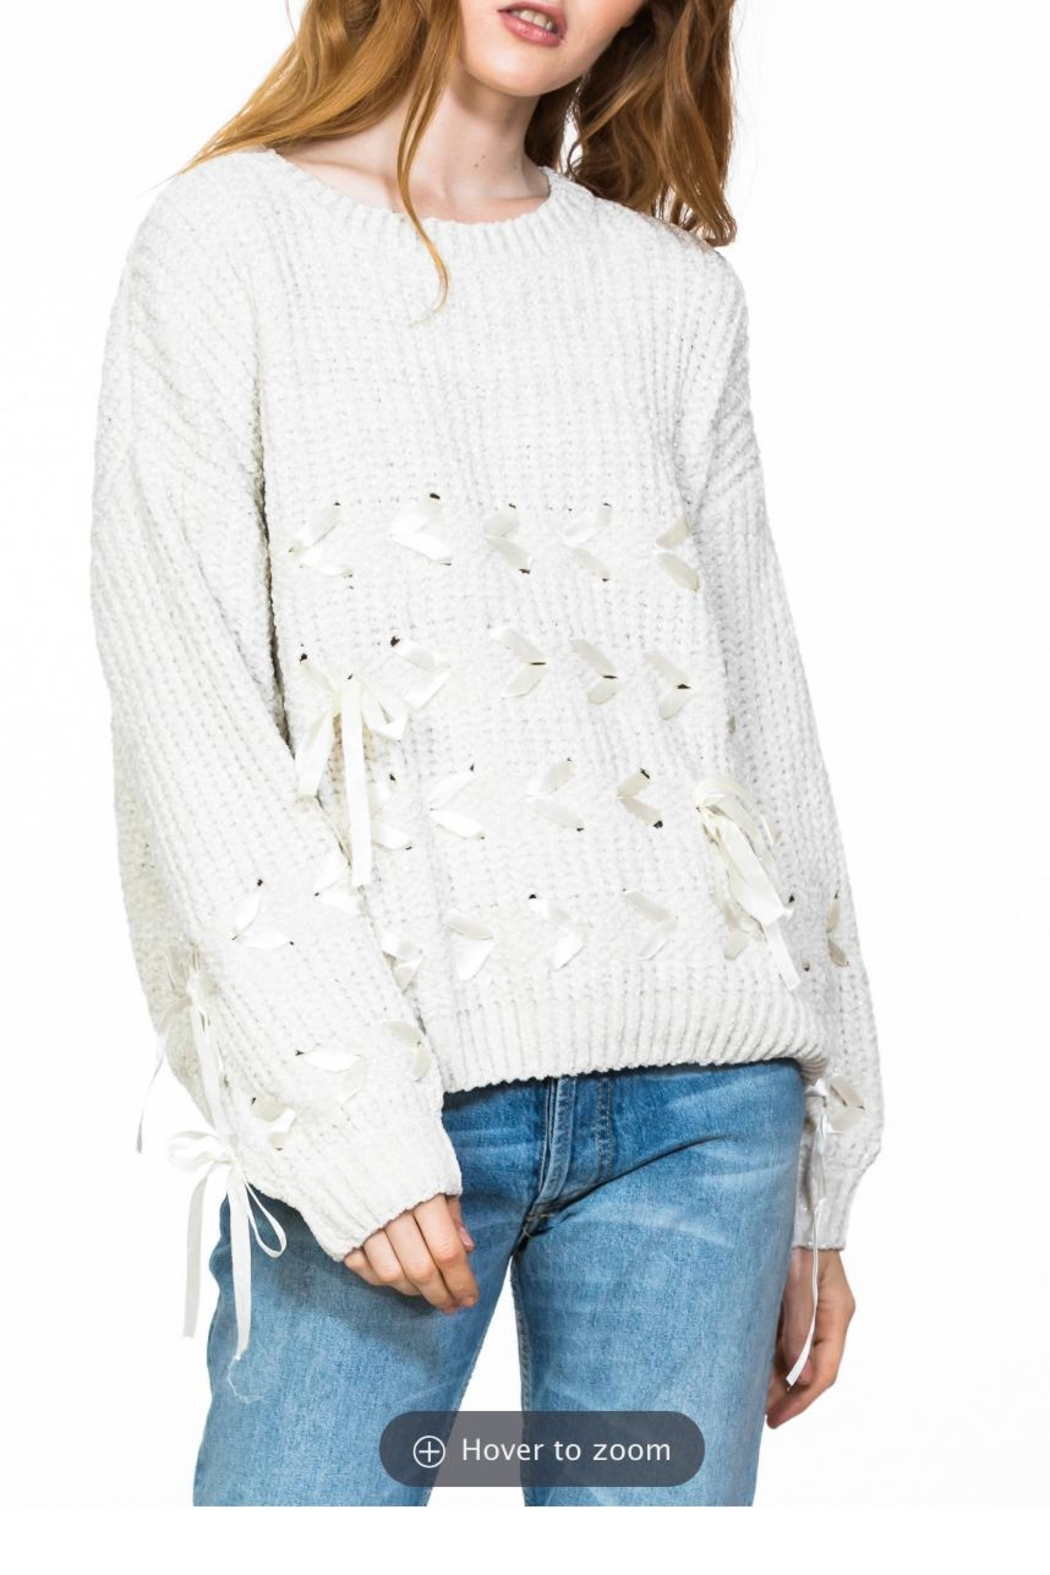 Ark & Co. Chenille Lace-Detailed Sweater - Front Full Image